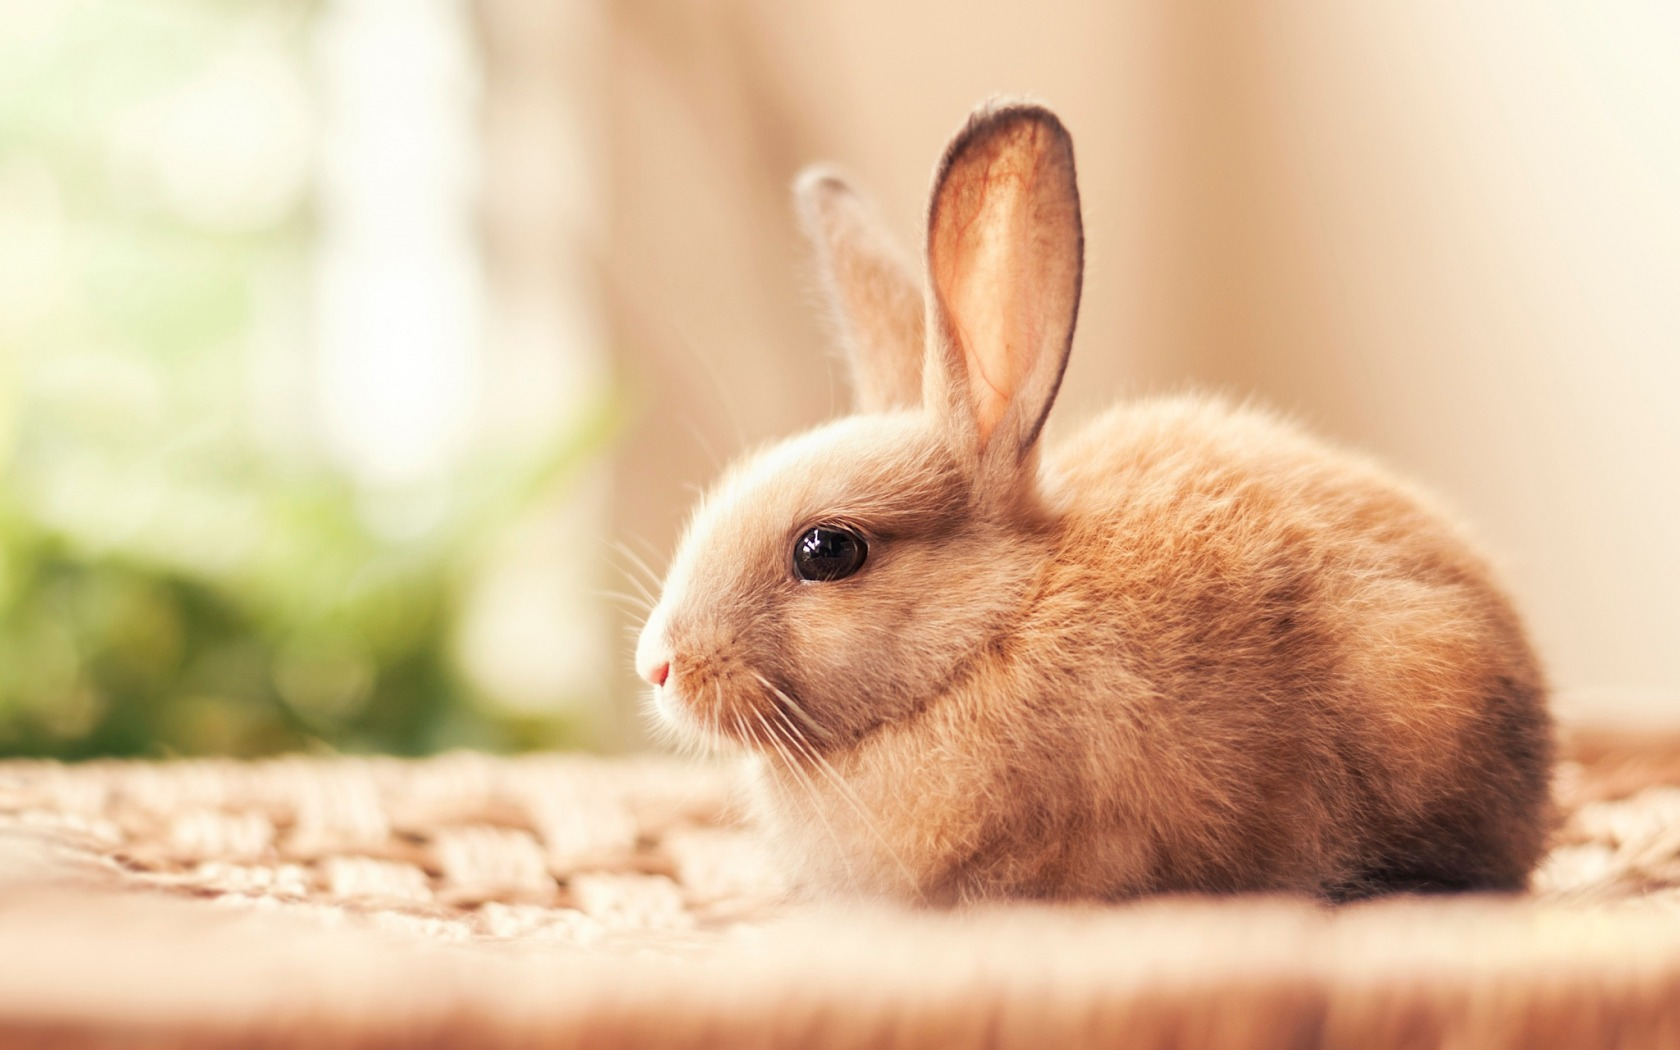 Cute White Rabbit Wallpapers For Desktop: Small Rabbit Wallpapers